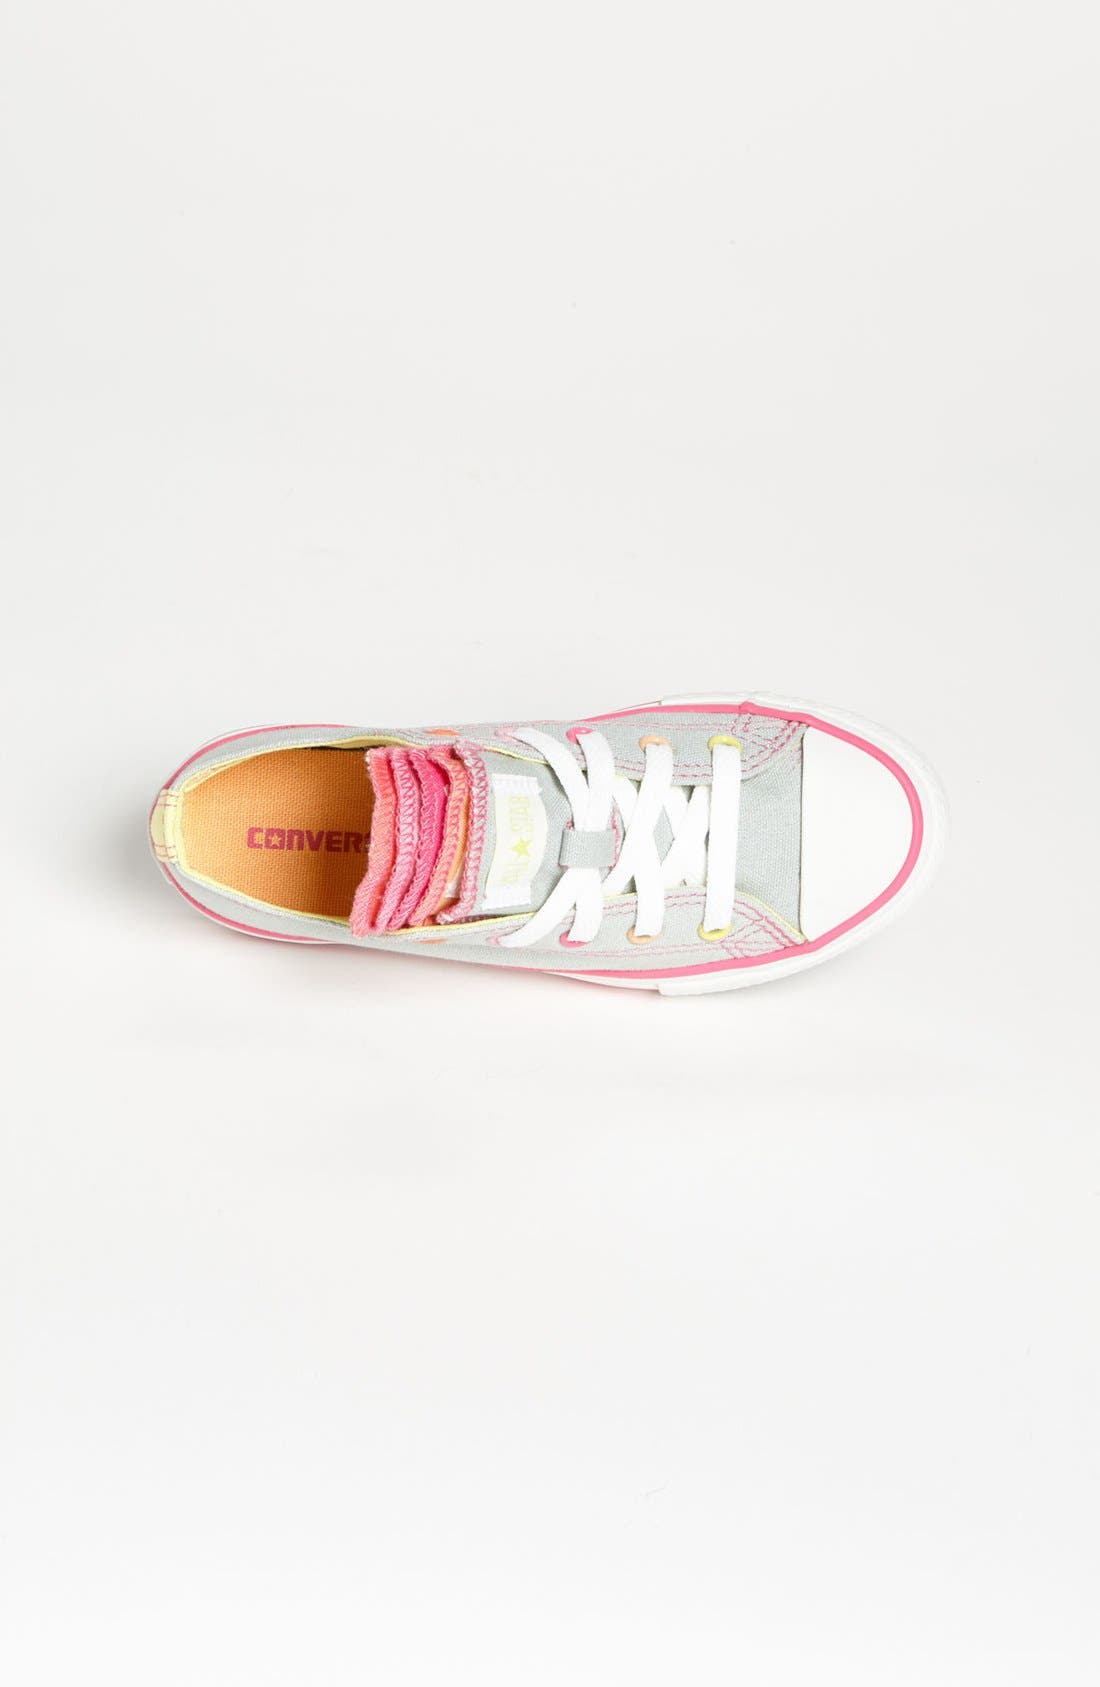 Alternate Image 3  - Converse All Star® Multi-Tongue Sneaker (Toddler, Little Kid & Big Kid)